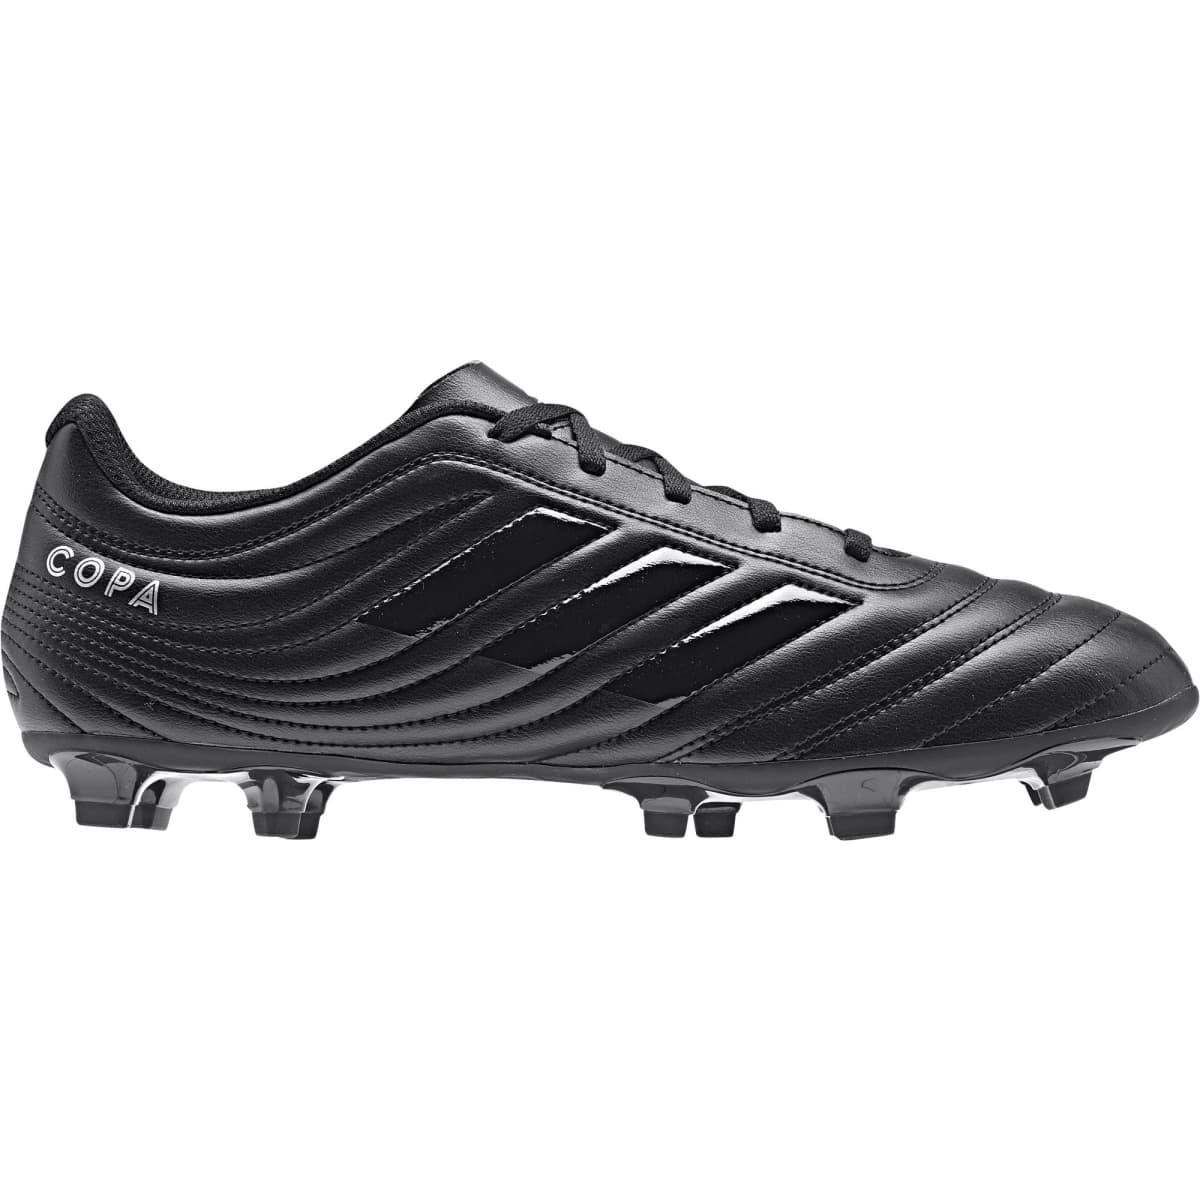 low priced a32f0 94135 Product Image. Adidas Copa 19.4 FG